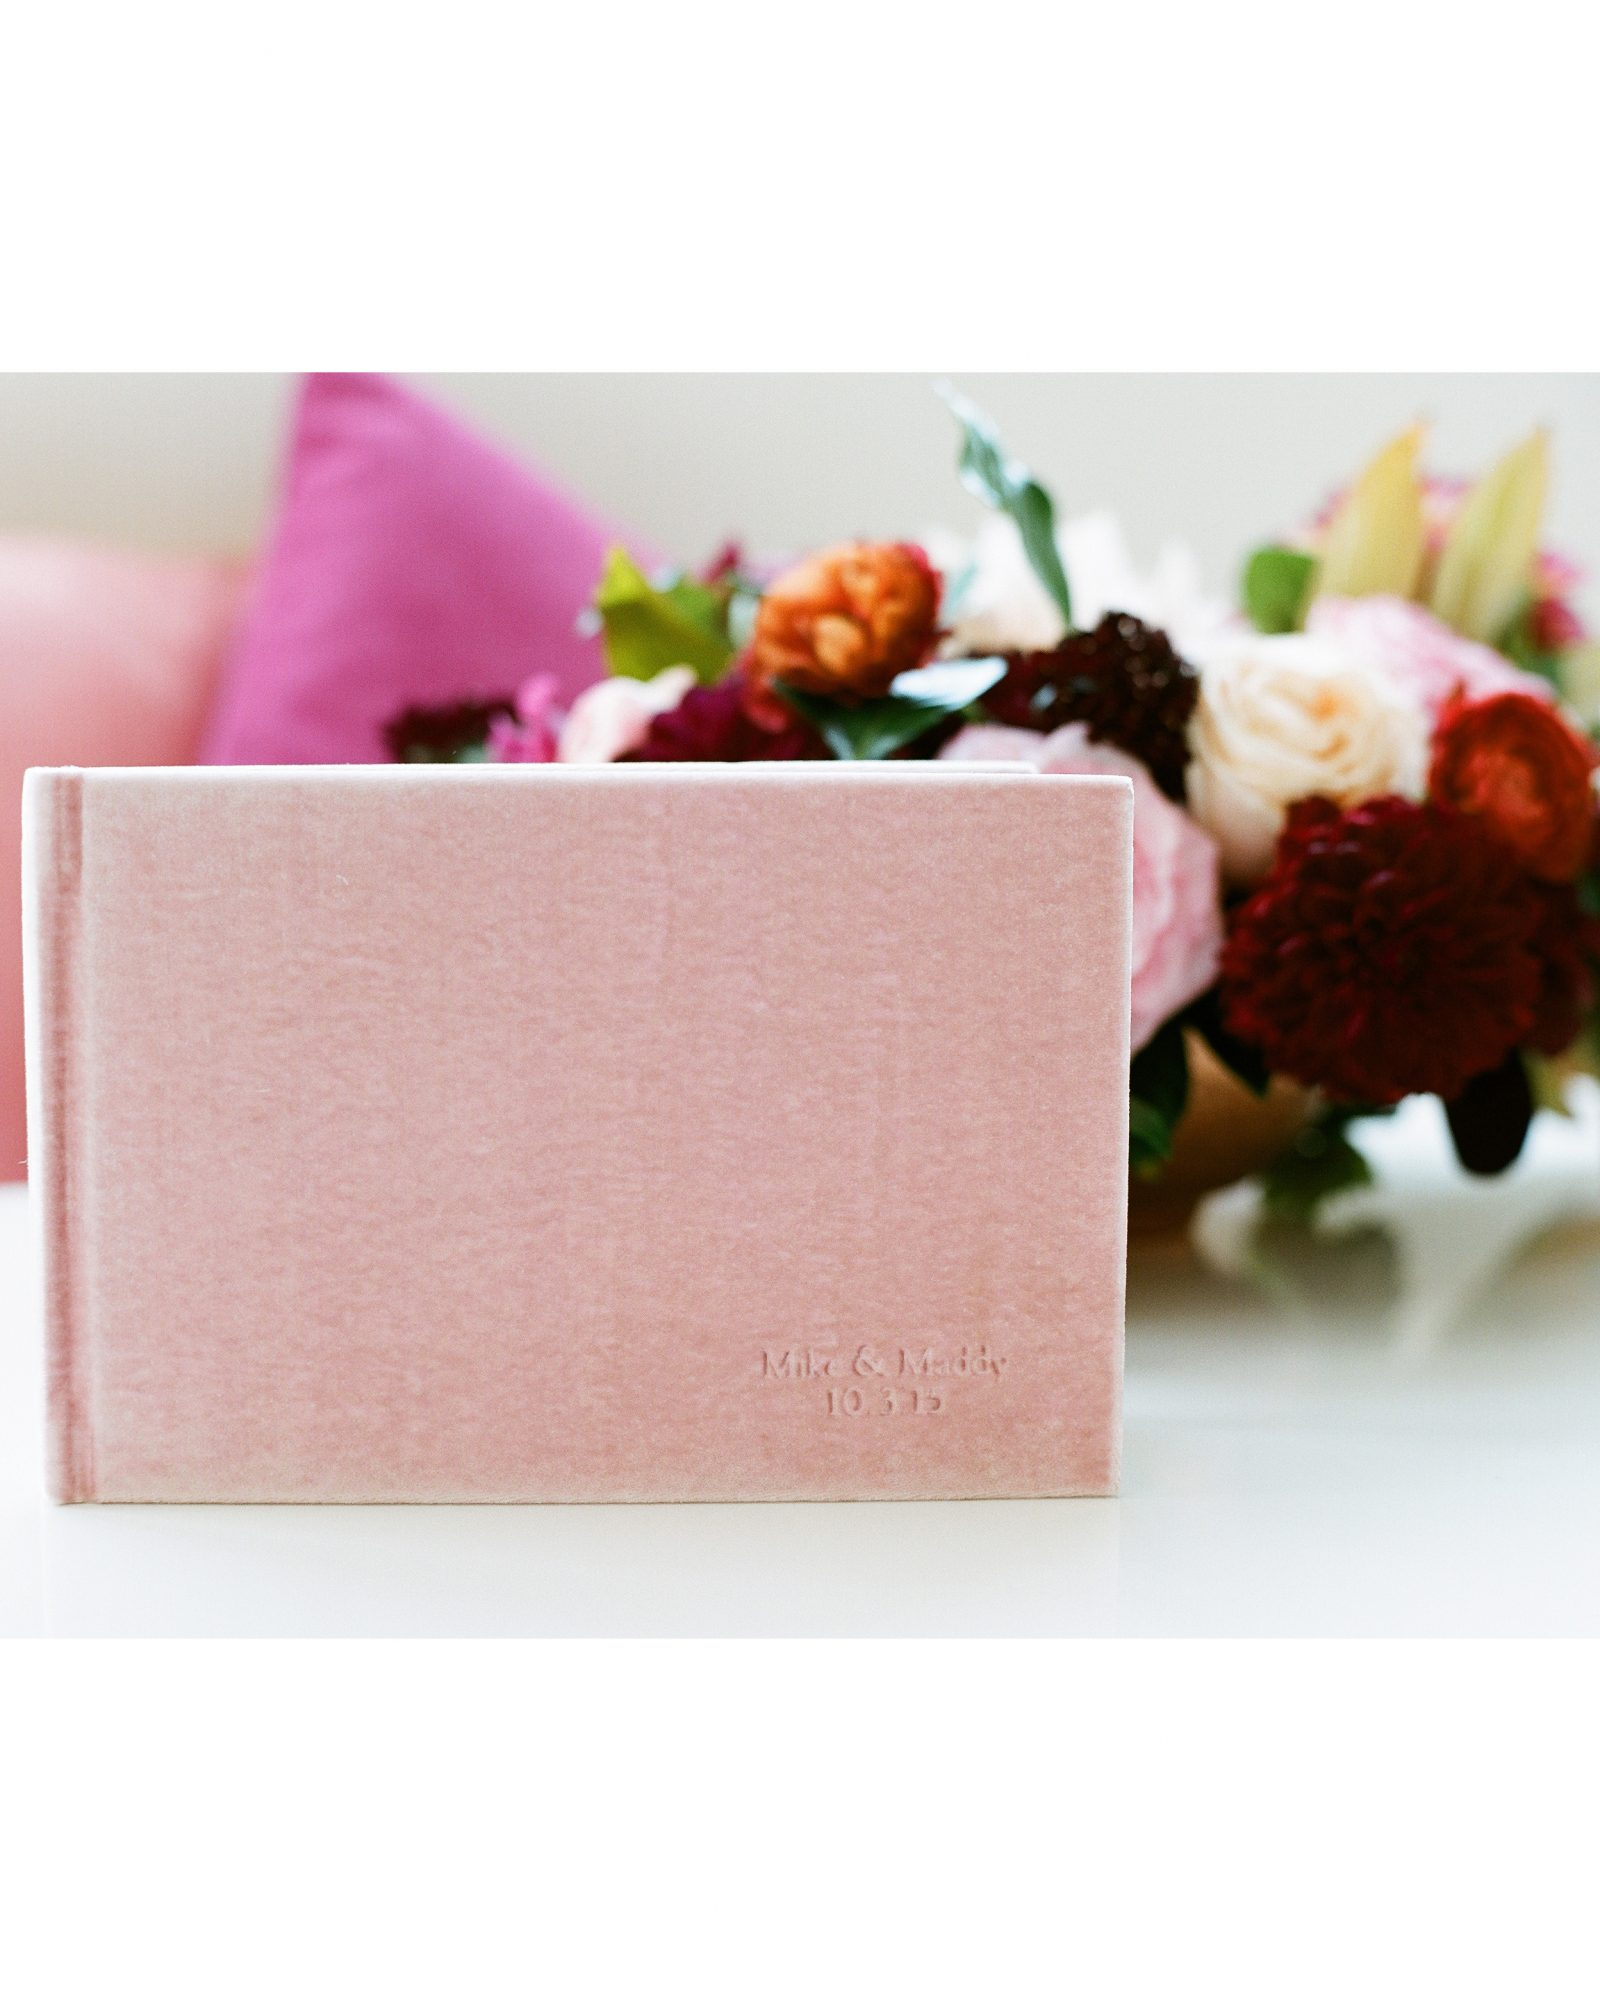 This soft, pink guest book went with the rest of the wedding's palette.